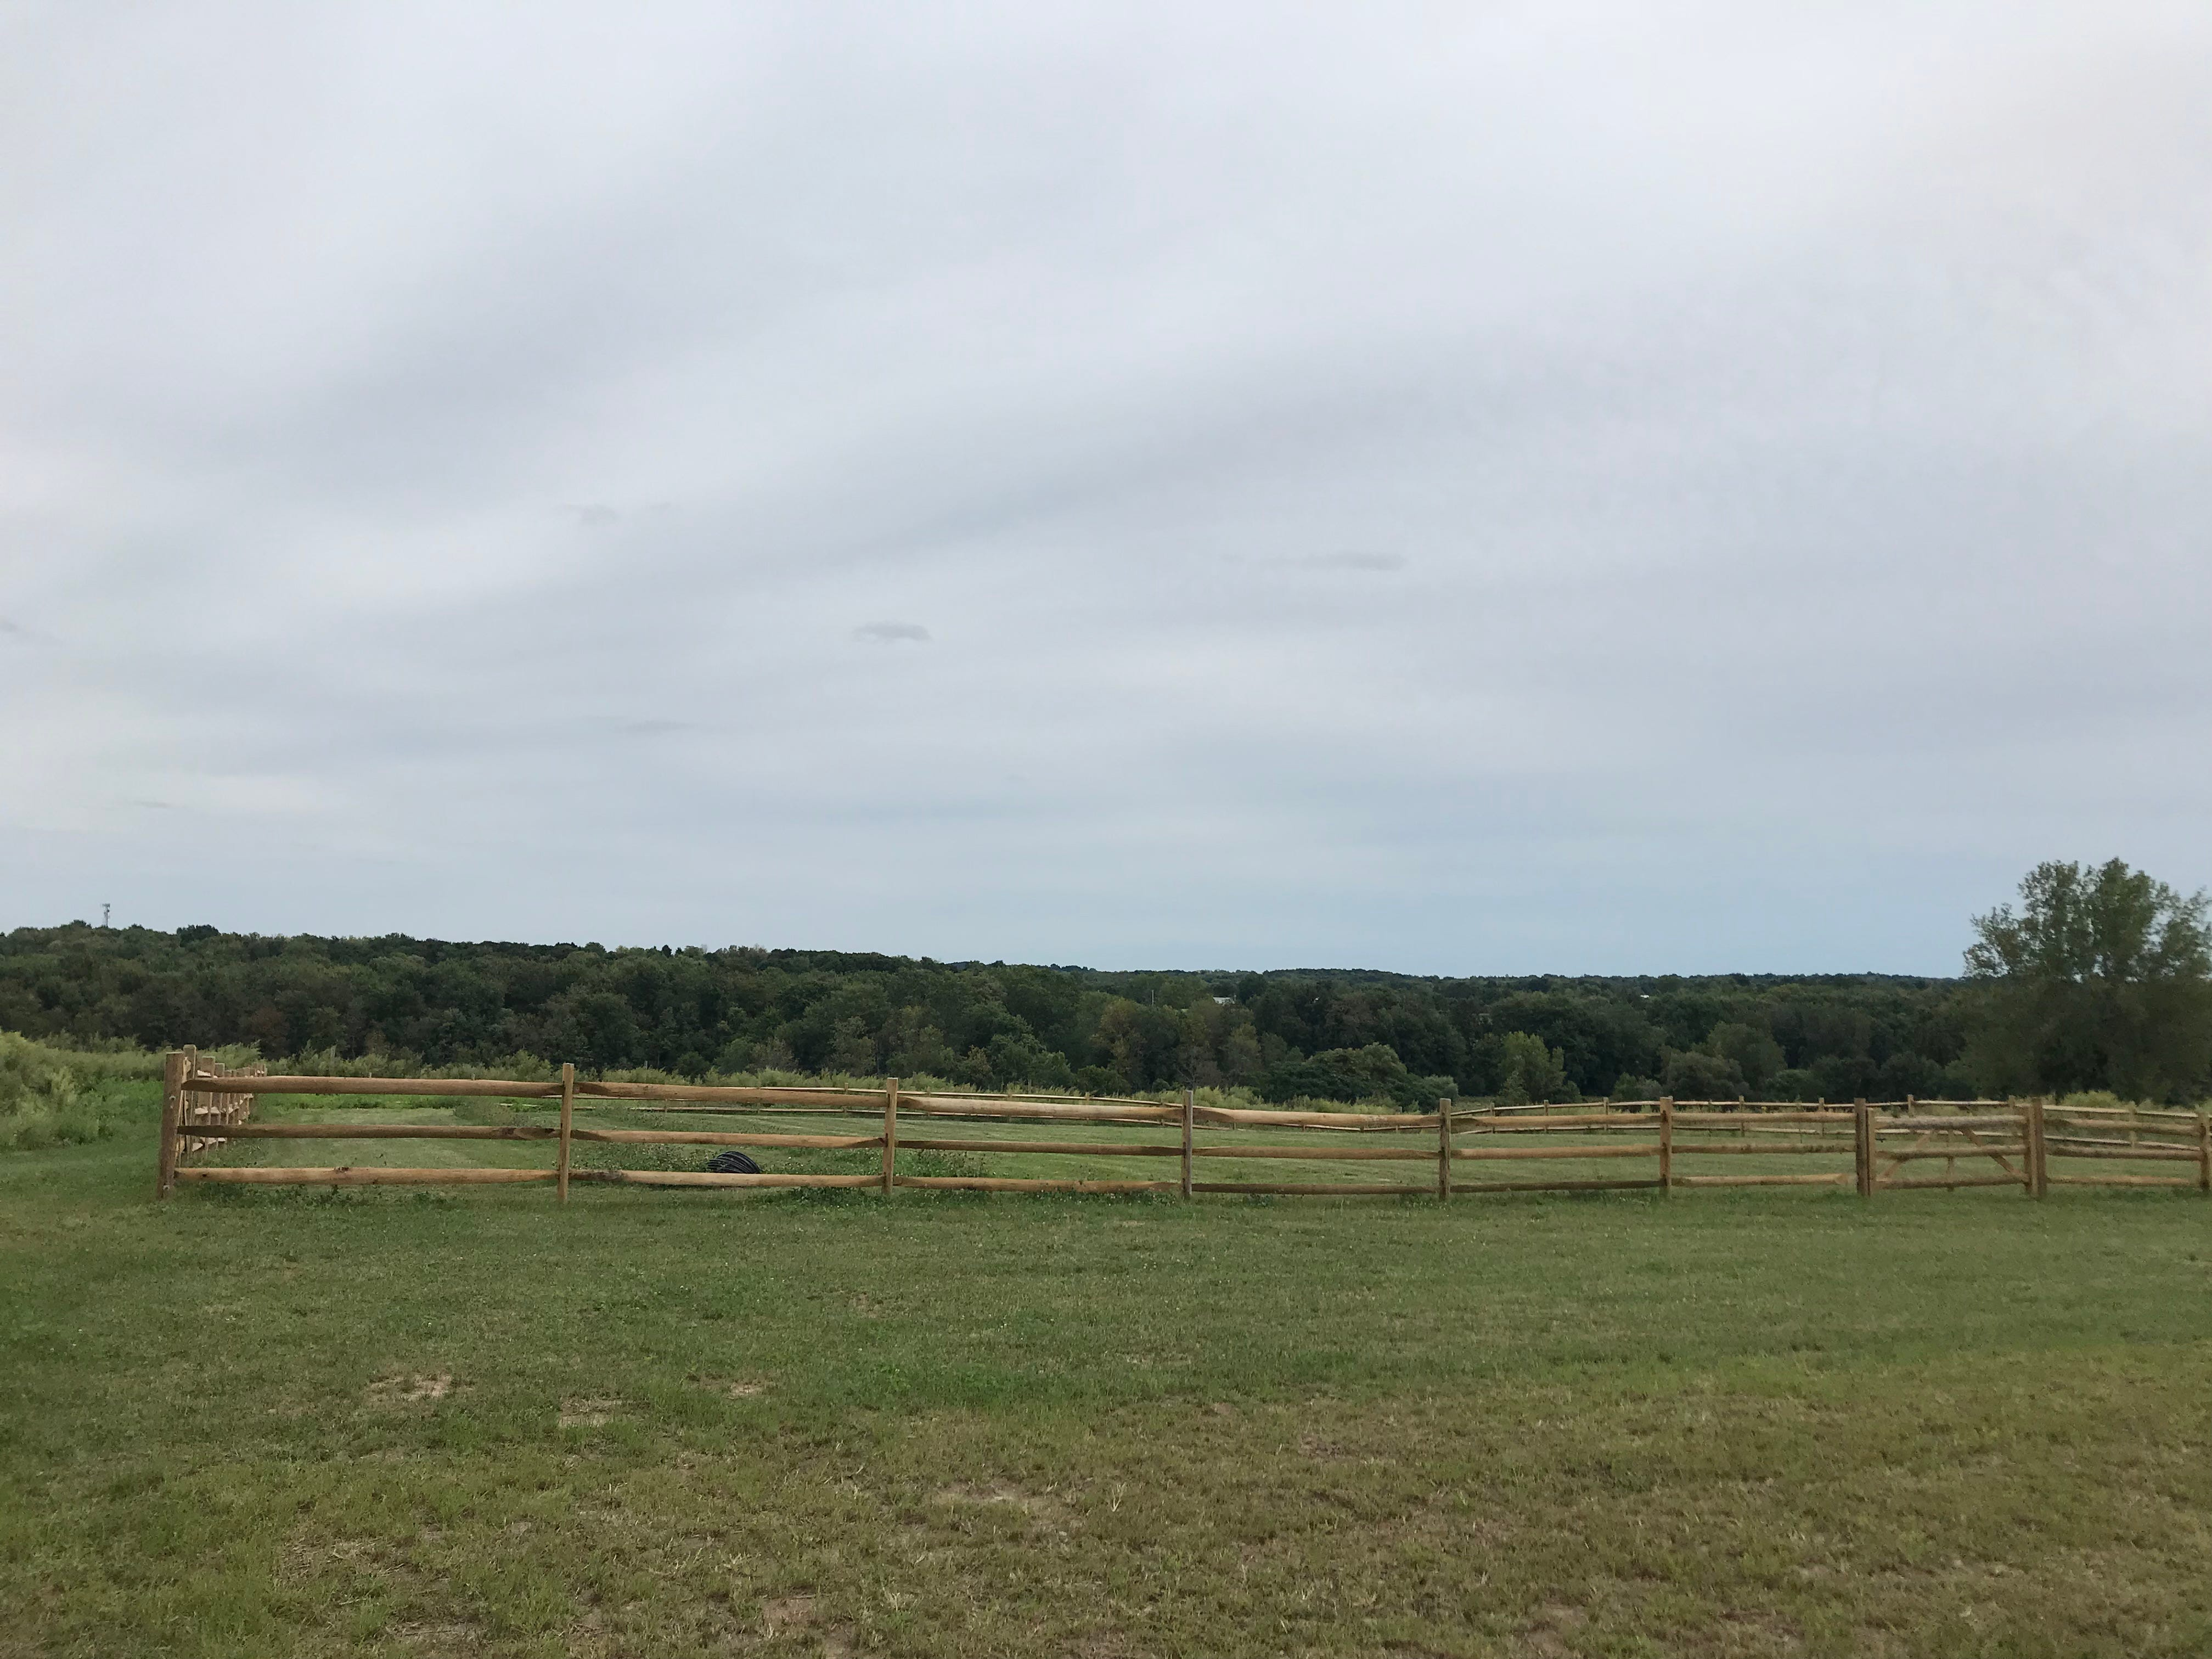 Never-ending views in every direction on top of the hill at Oak & Apple Cidery in Penfield.